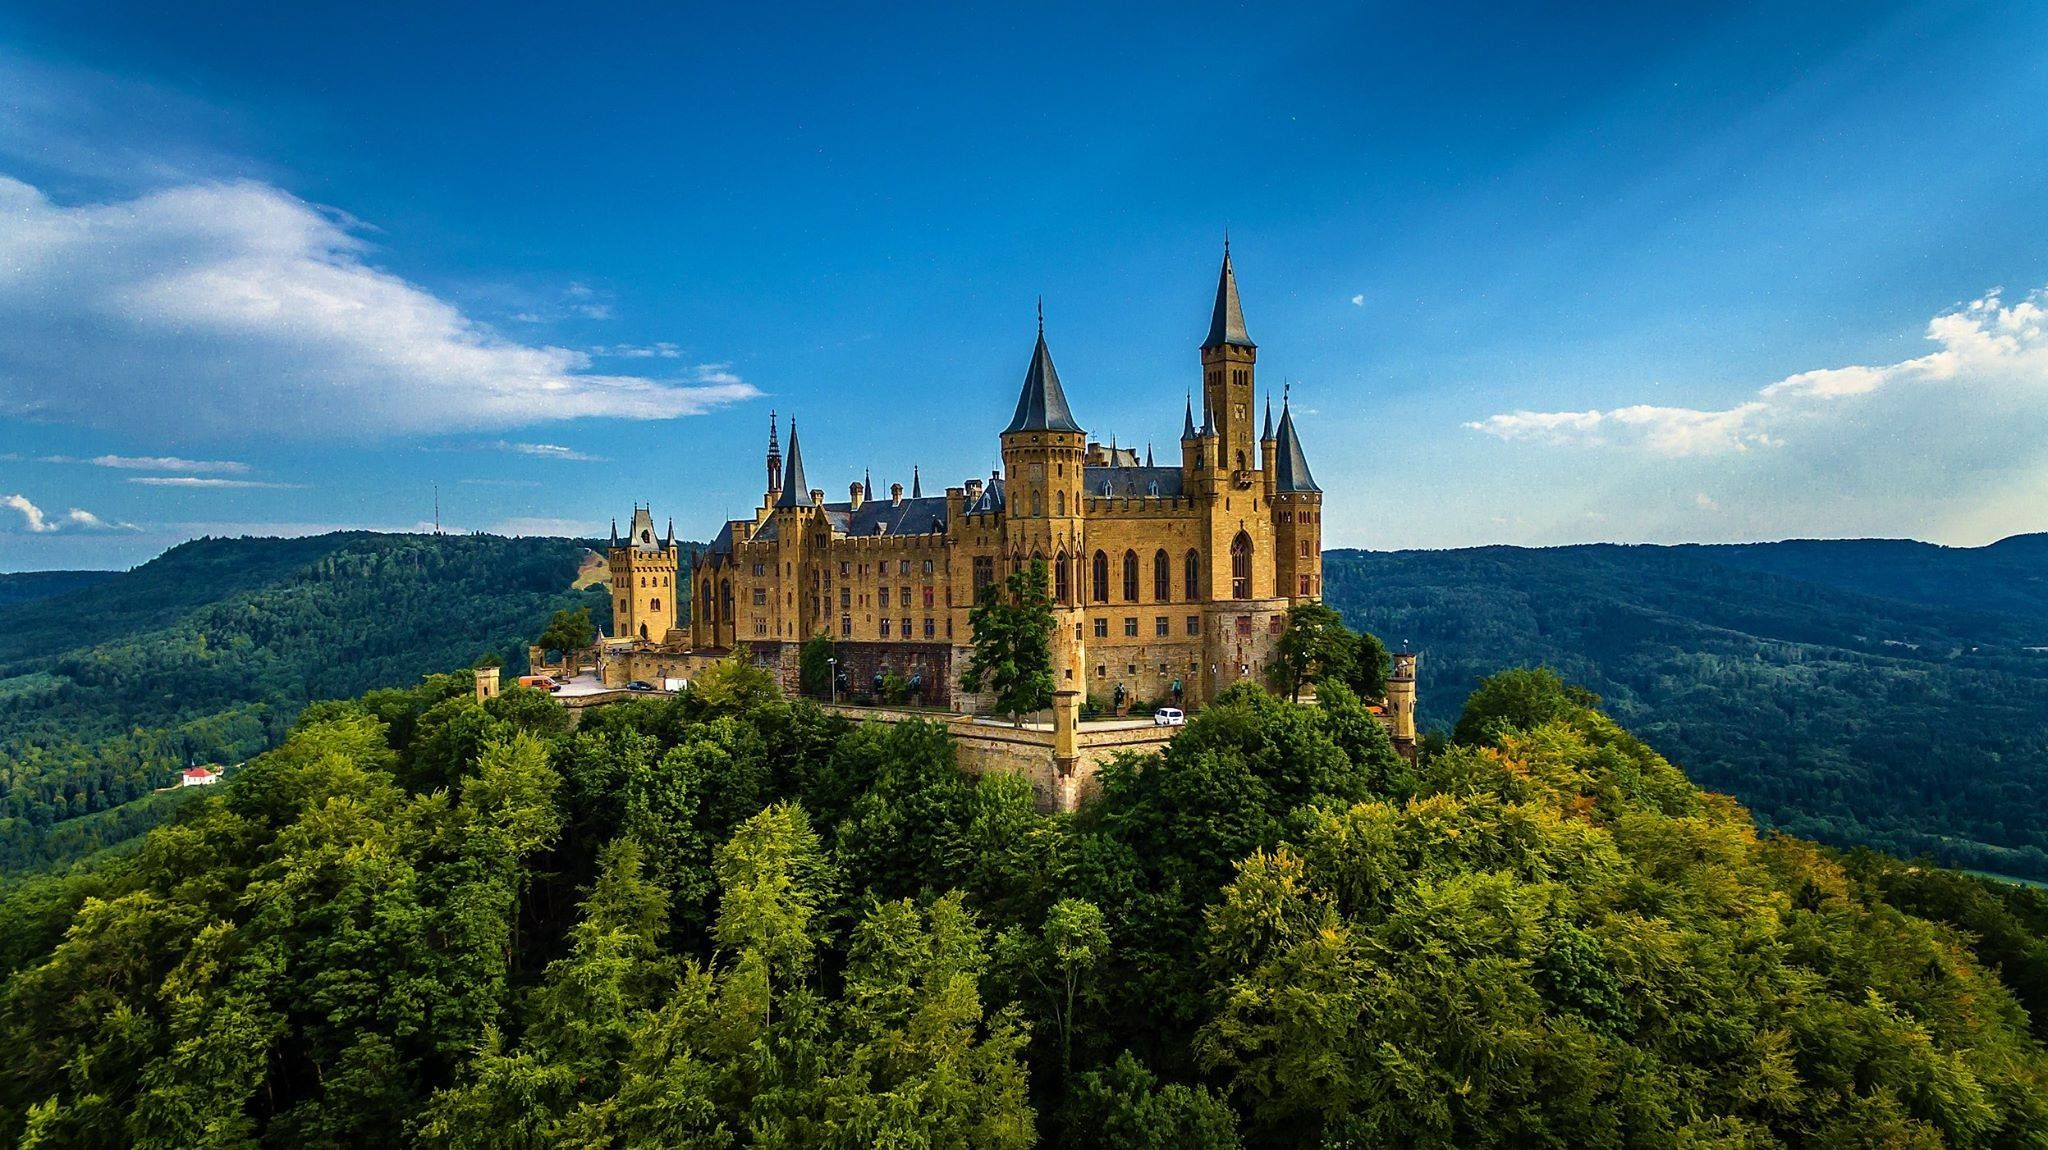 Hohenzollern Castle The Fairytale On The Northwestern Edge Of The Swabian Alb Hohenzollern Castle Germany Castles Castle